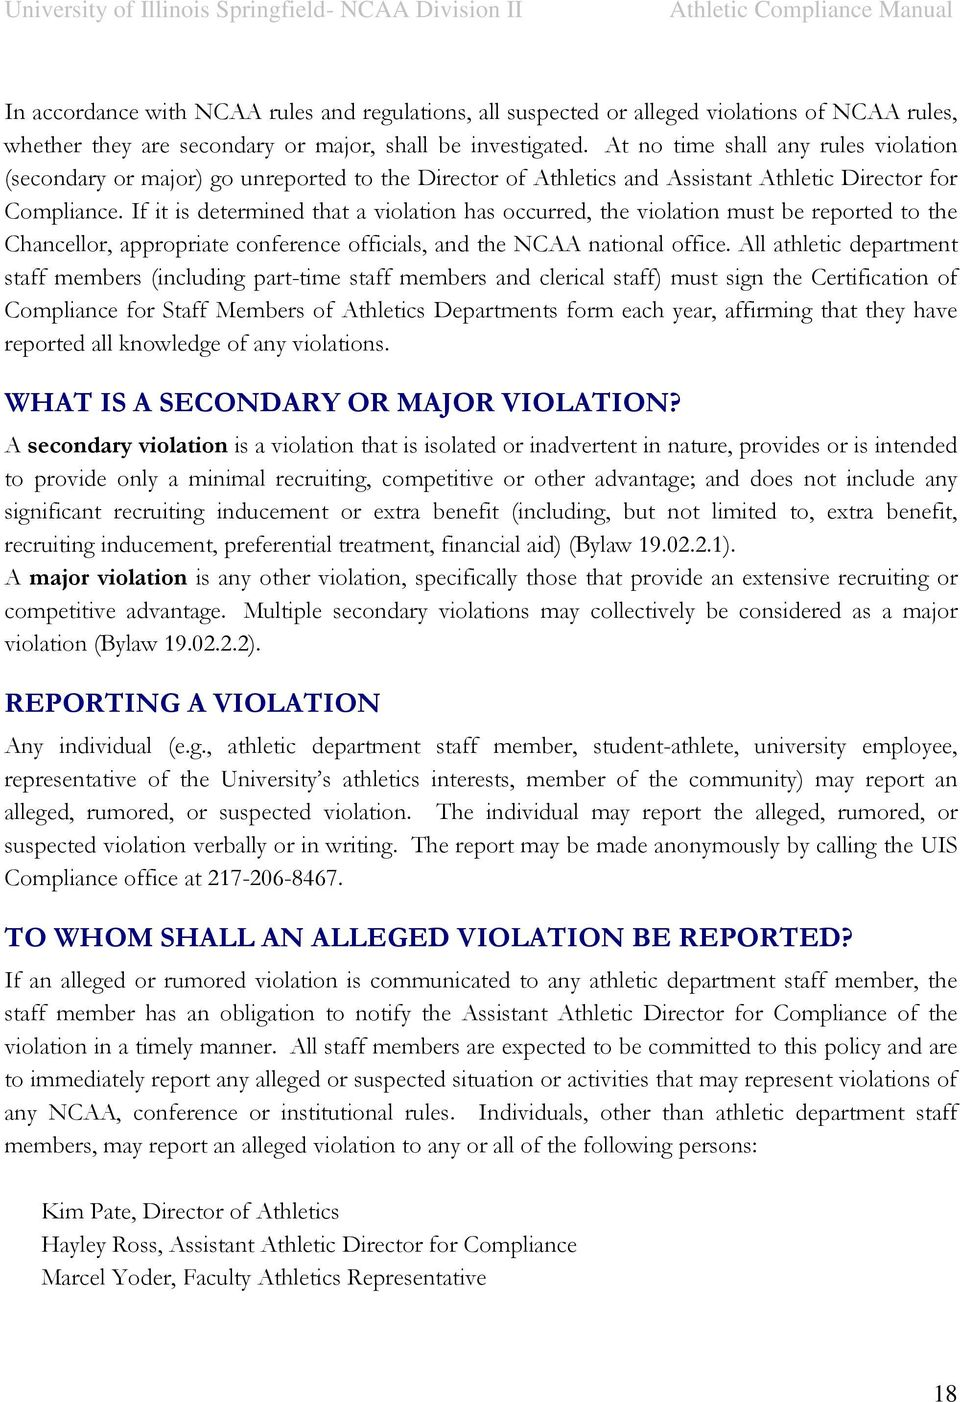 If it is determined that a violation has occurred, the violation must be reported to the Chancellor, appropriate conference officials, and the NCAA national office.